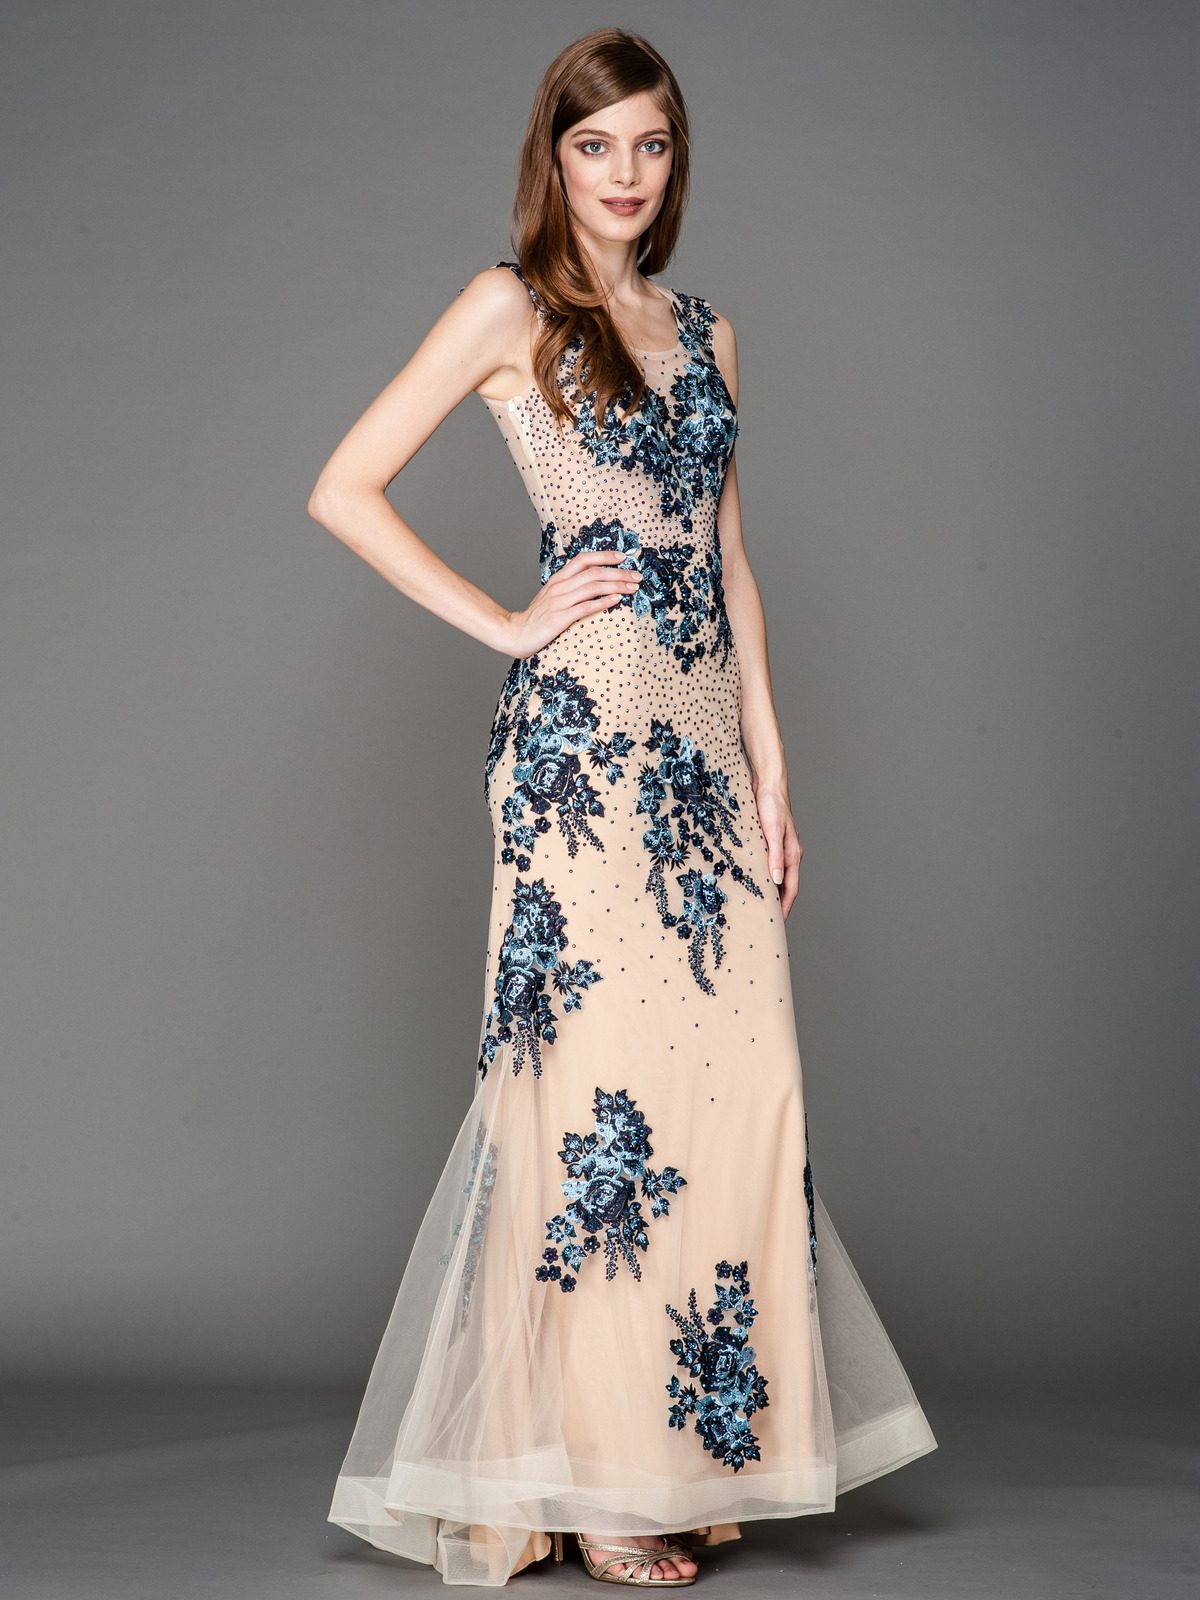 Embroidery Sheer Evening Dress   Sung Boutique L.A.